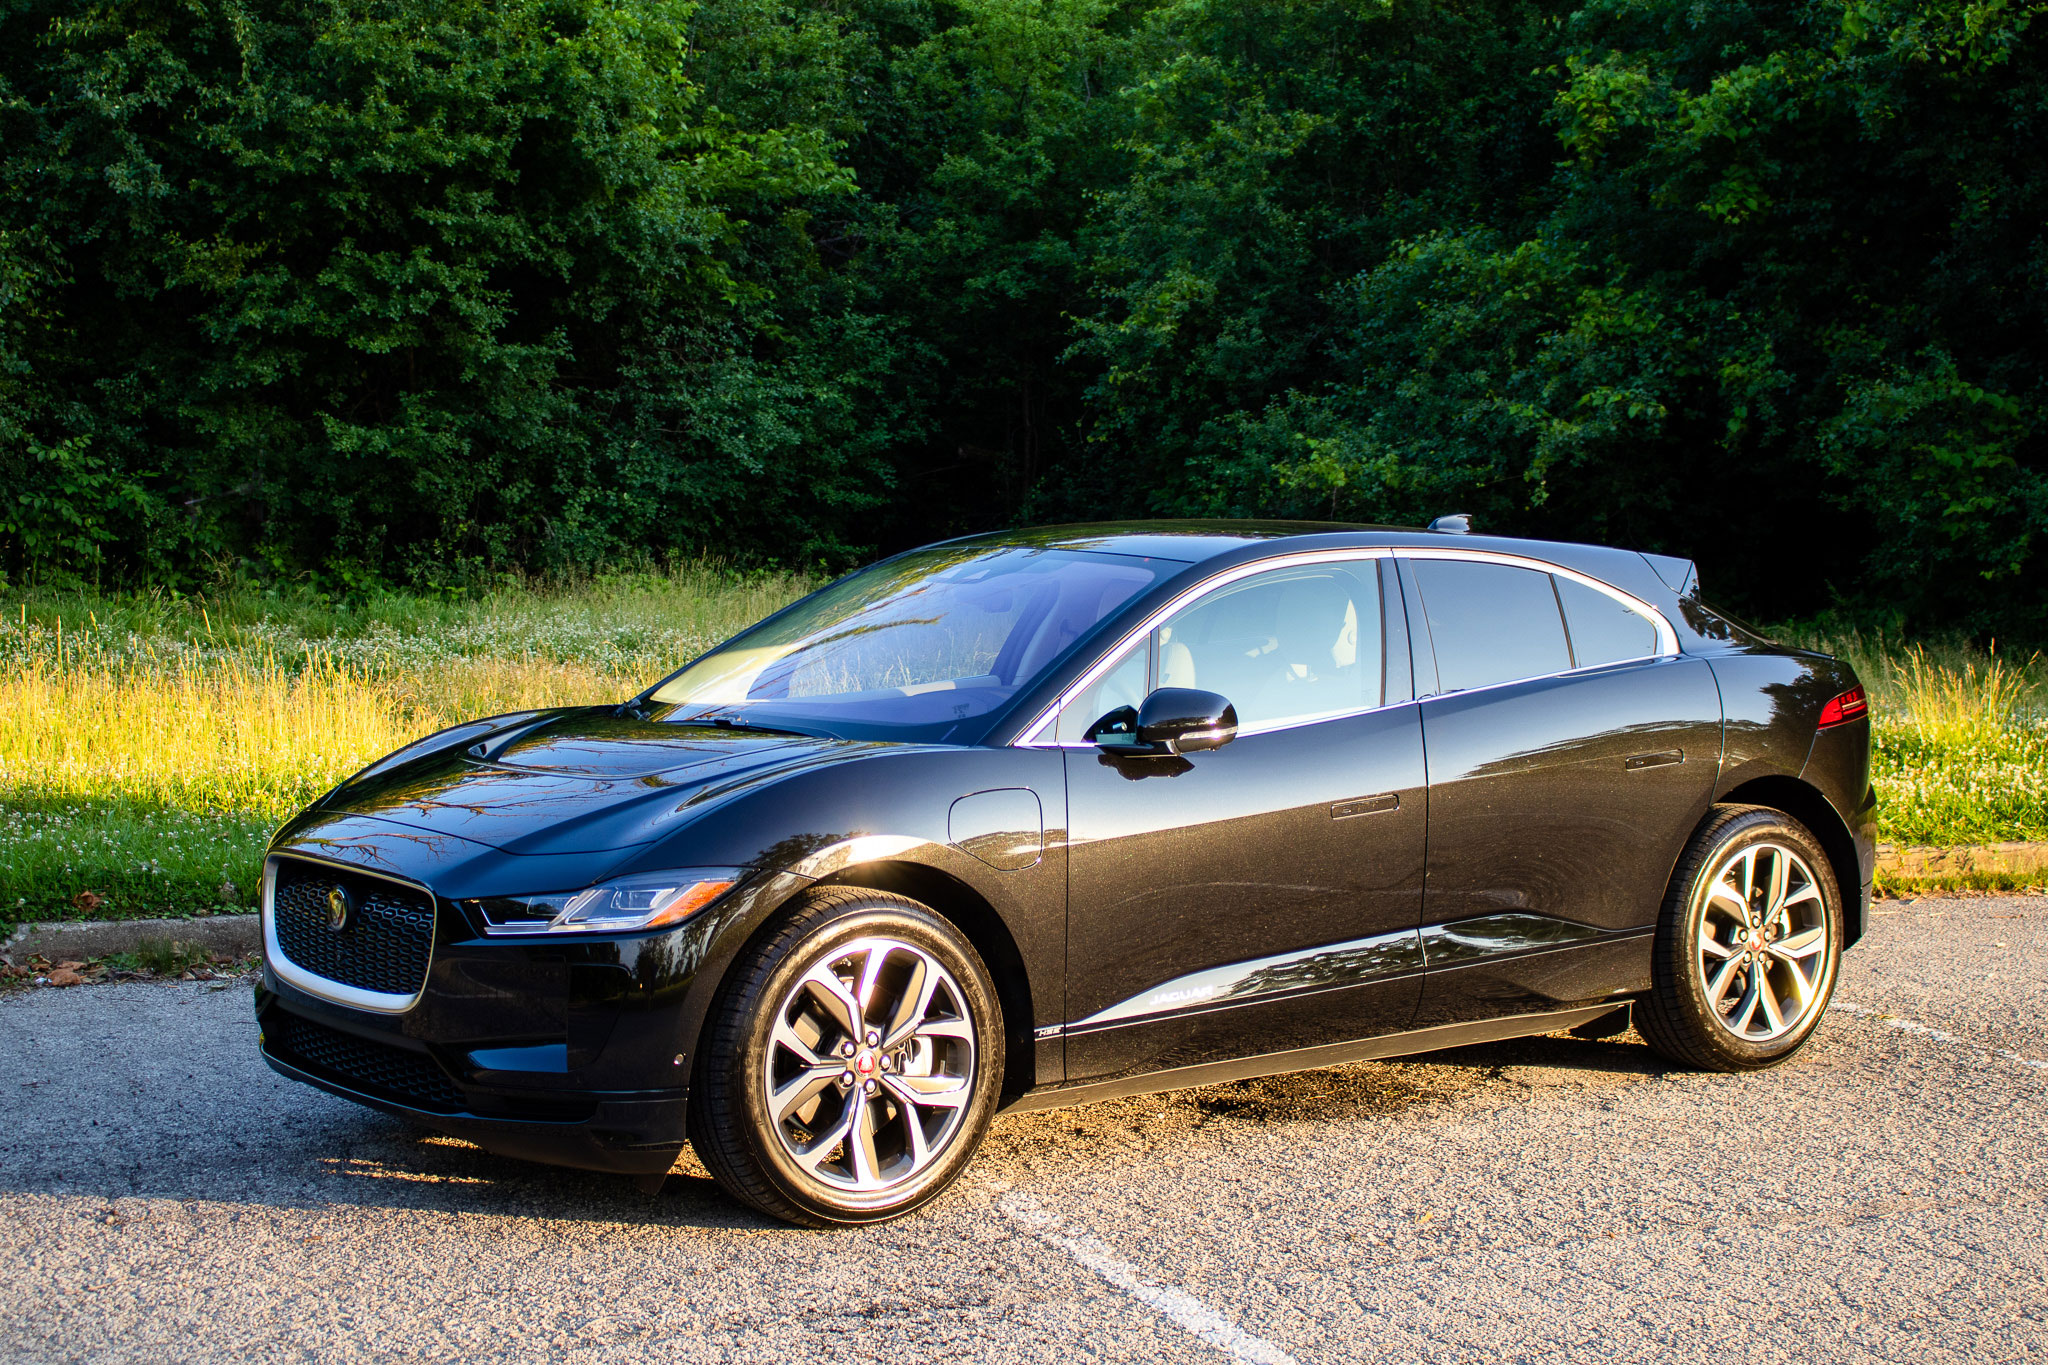 2019 Jaguar I Pace Ev Design Specs Mileage Price >> Living With Range Anxiety Two Weeks With The Jaguar I Pace